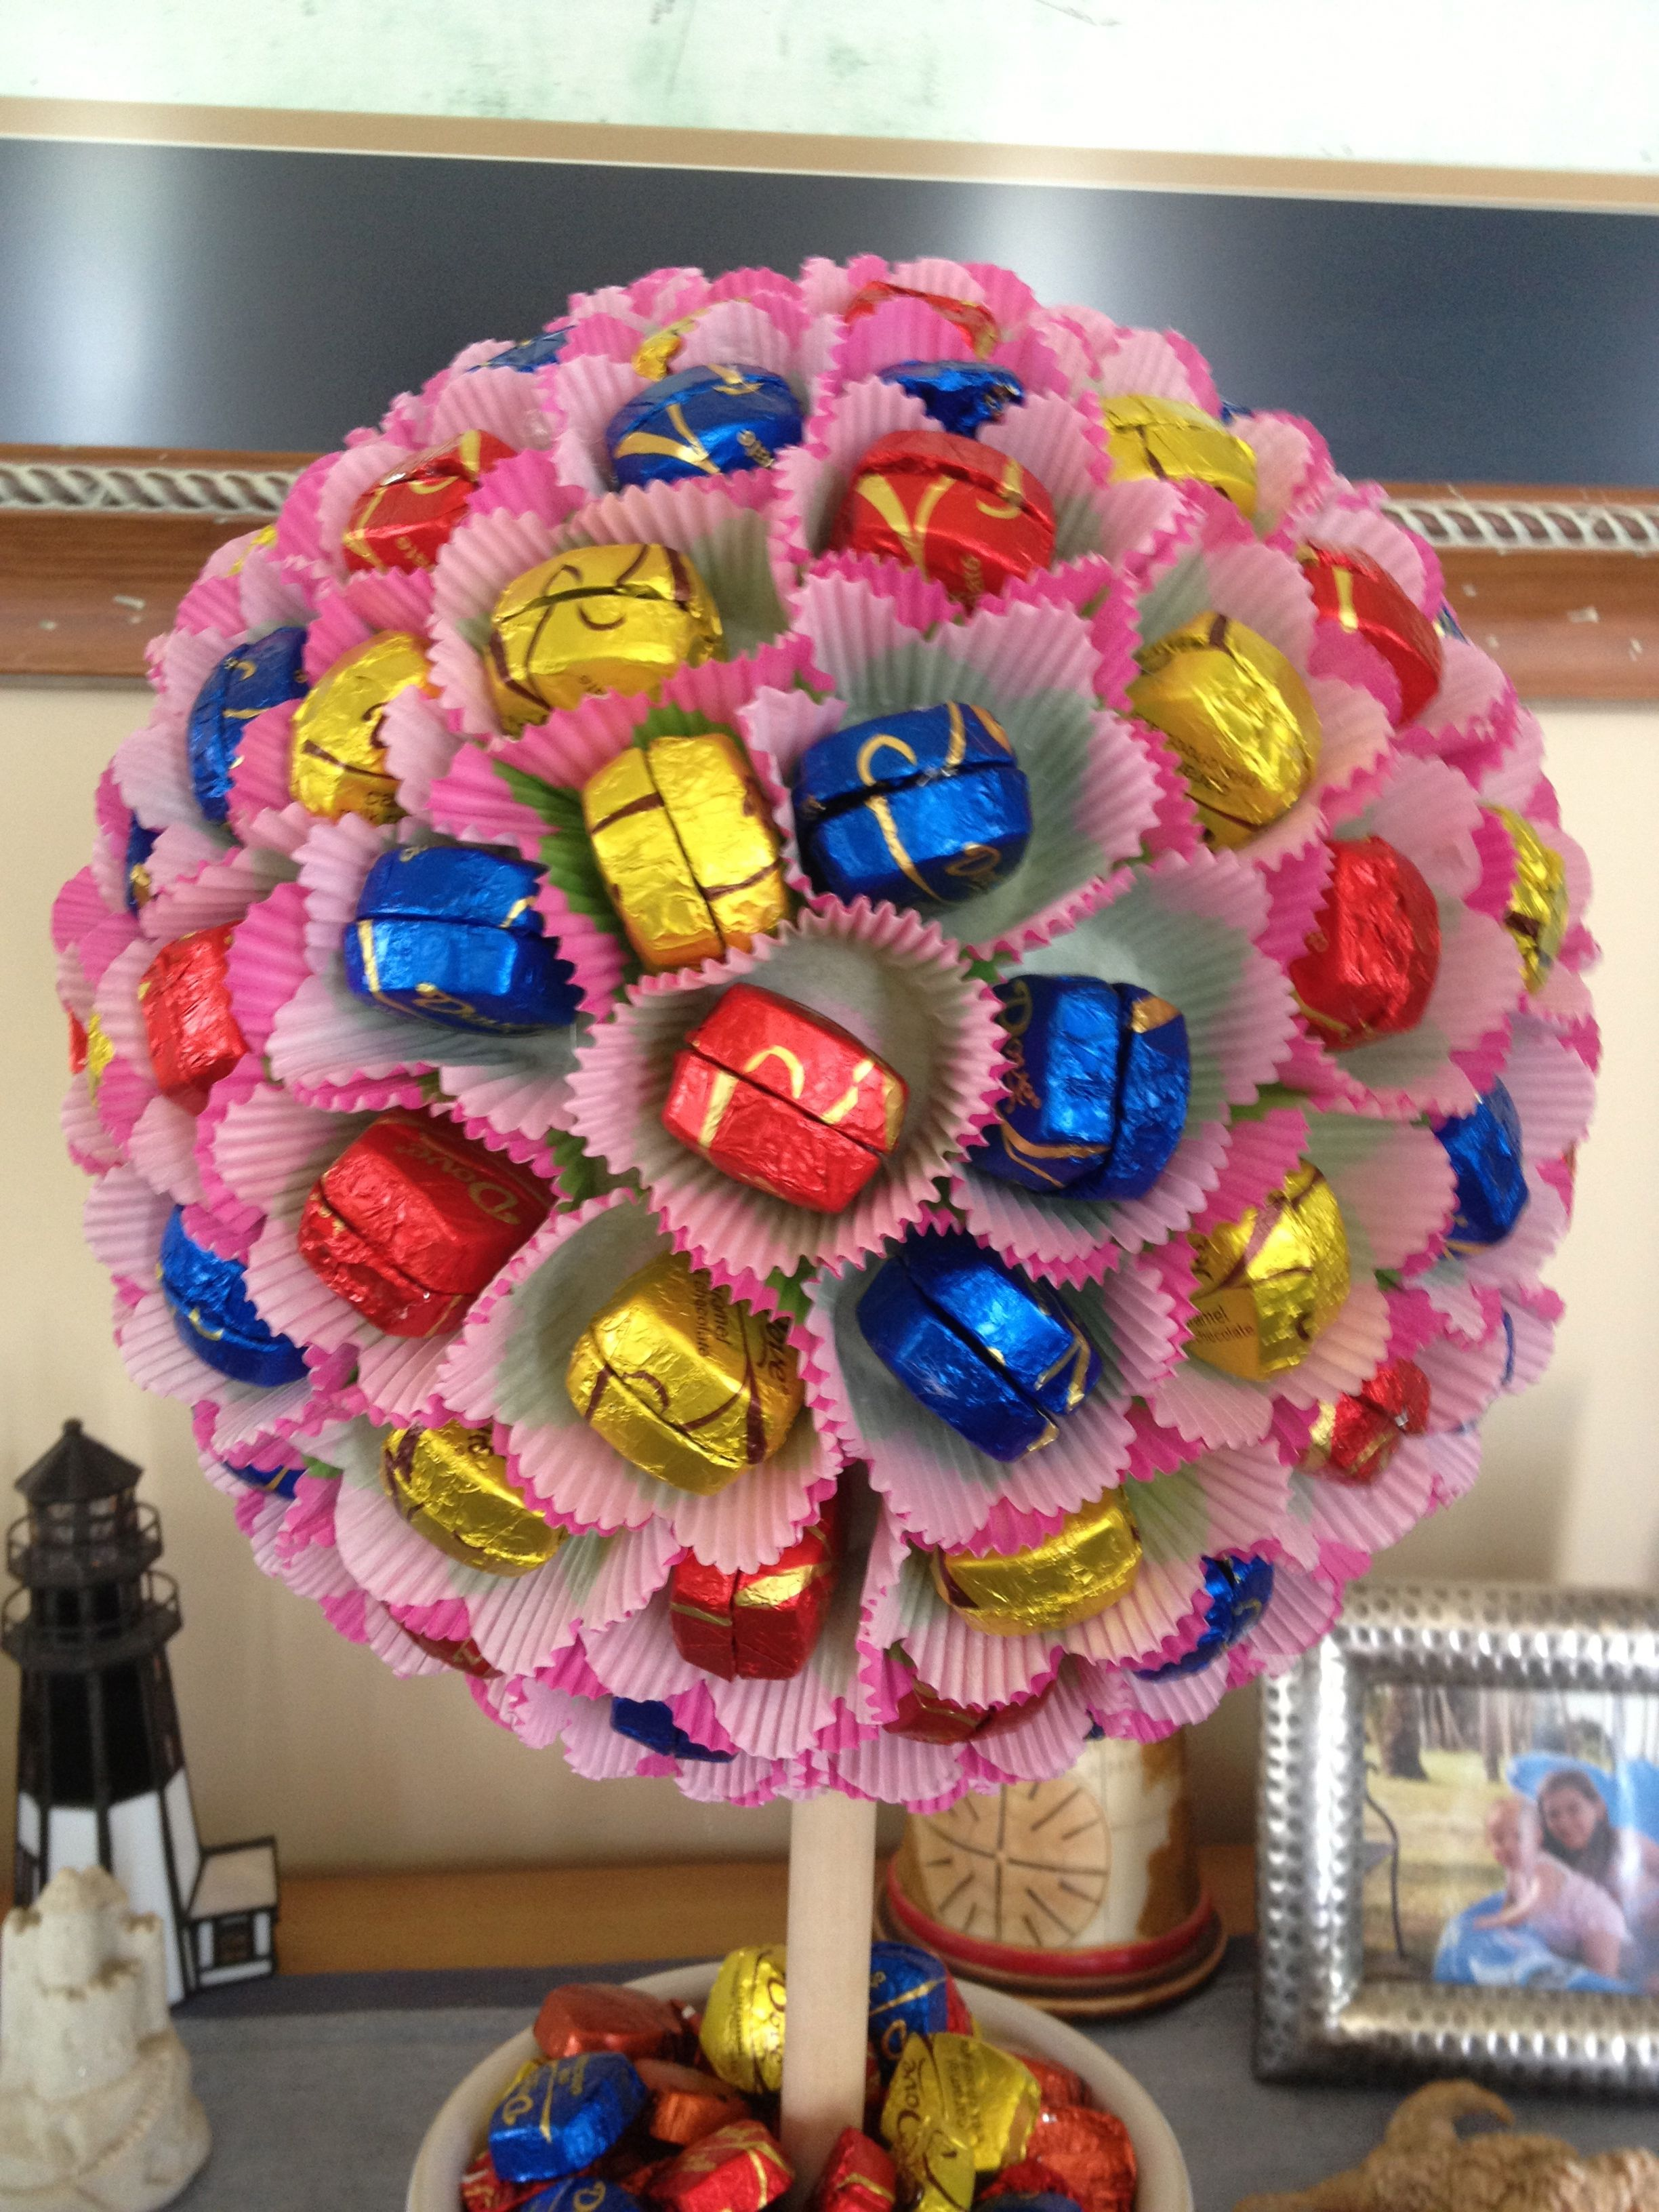 Chocolate bouquet on pinterest candy flowers bouquet of chocolate - Dove Chocolate Topiary Tree Used Mini Cupcake Papers And Double Chocolate Candies For Speed